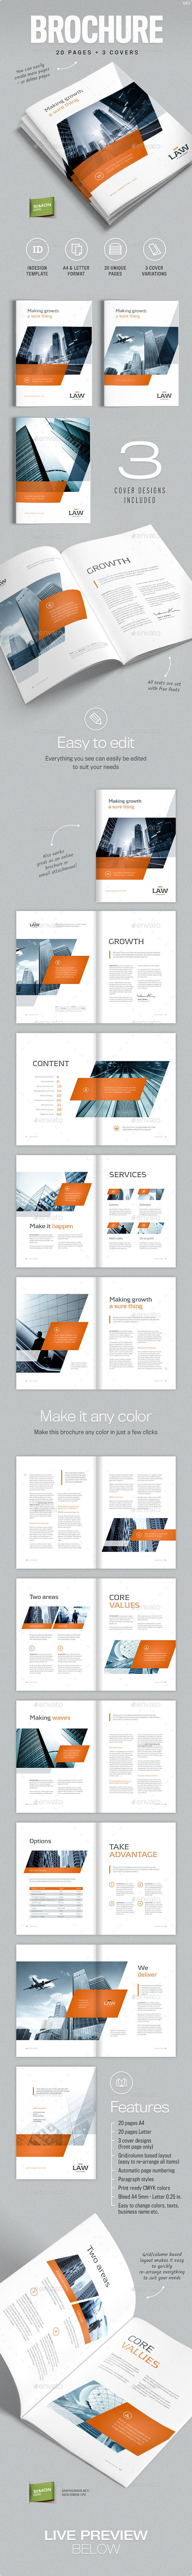 Professional, clean and modern 20 page corporate business brochure #indesign #stylish #template • Available here → http://graphicriver.net/item/brochure-template-for-indesign-a4-and-letter/12149923?s_rank=44&ref=pxcr